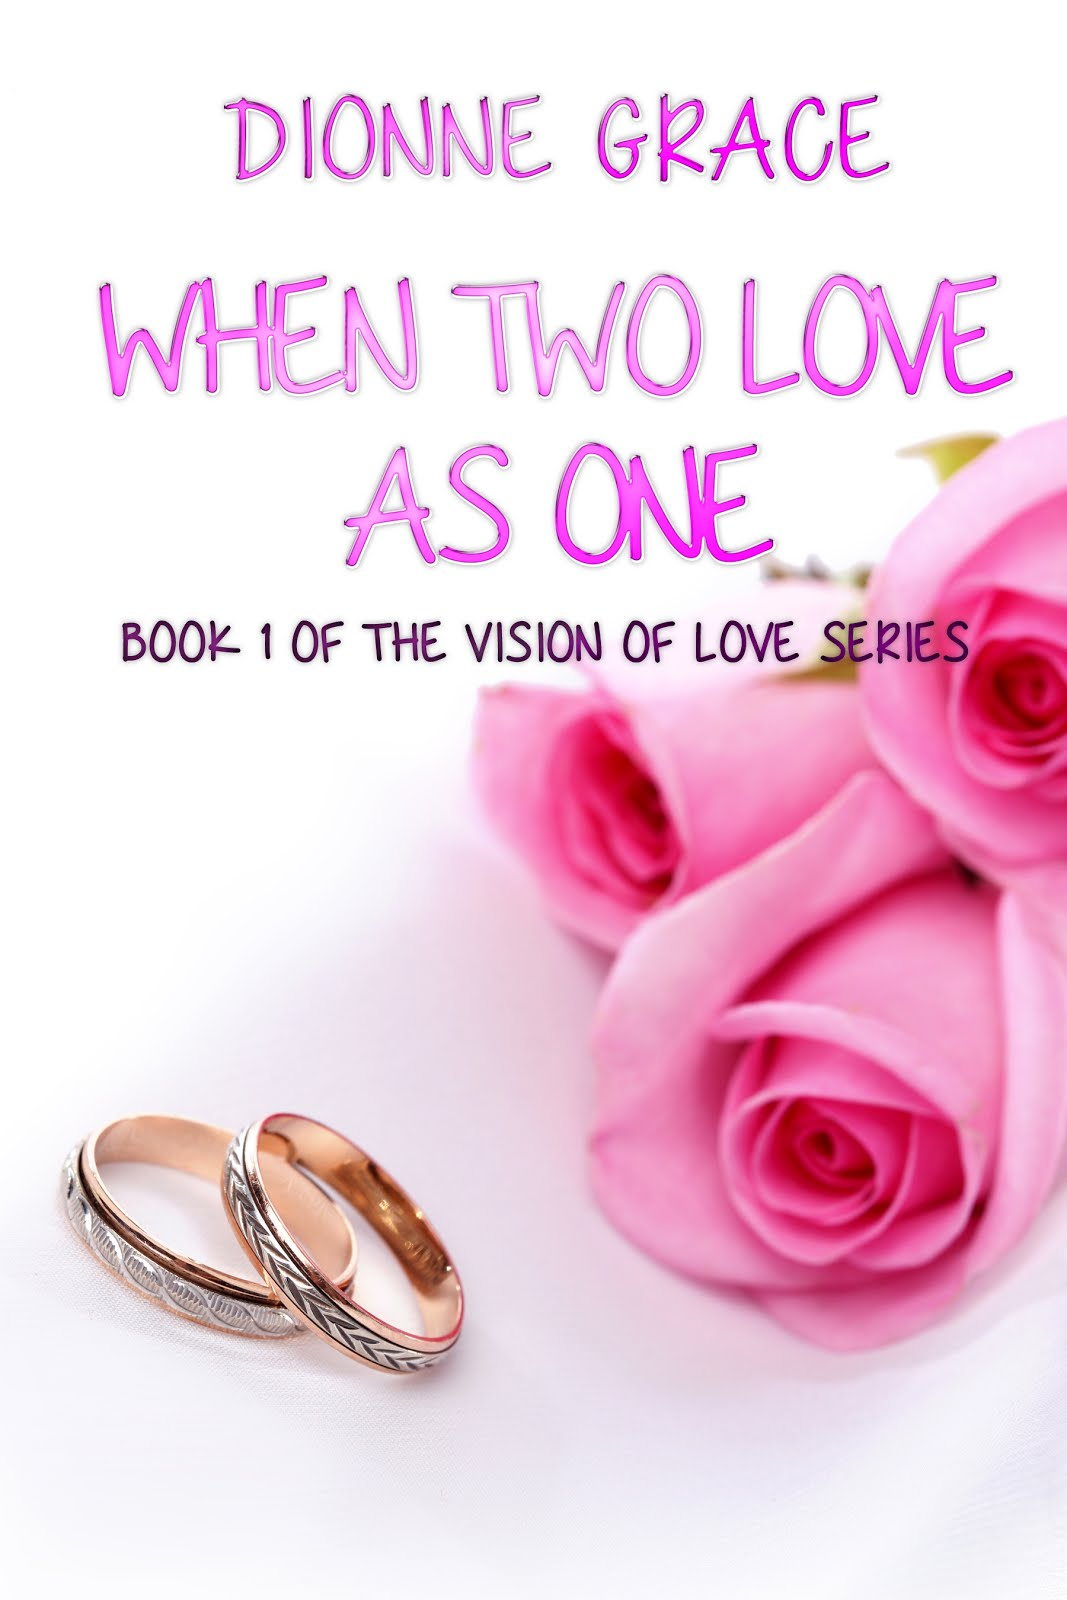 When Two Love as One by Dionne Grace